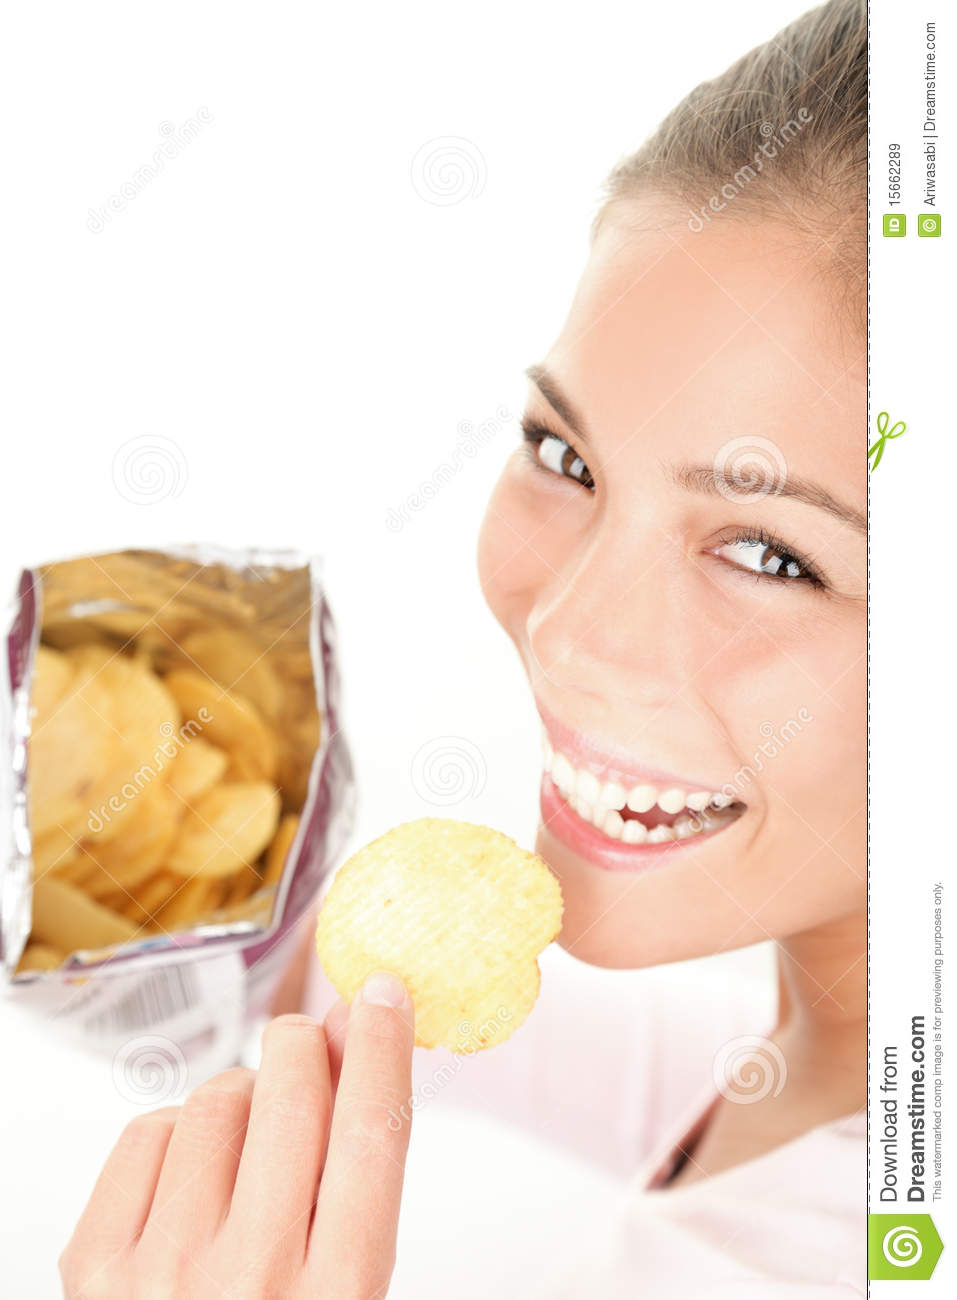 Business Plan For Potato Chips